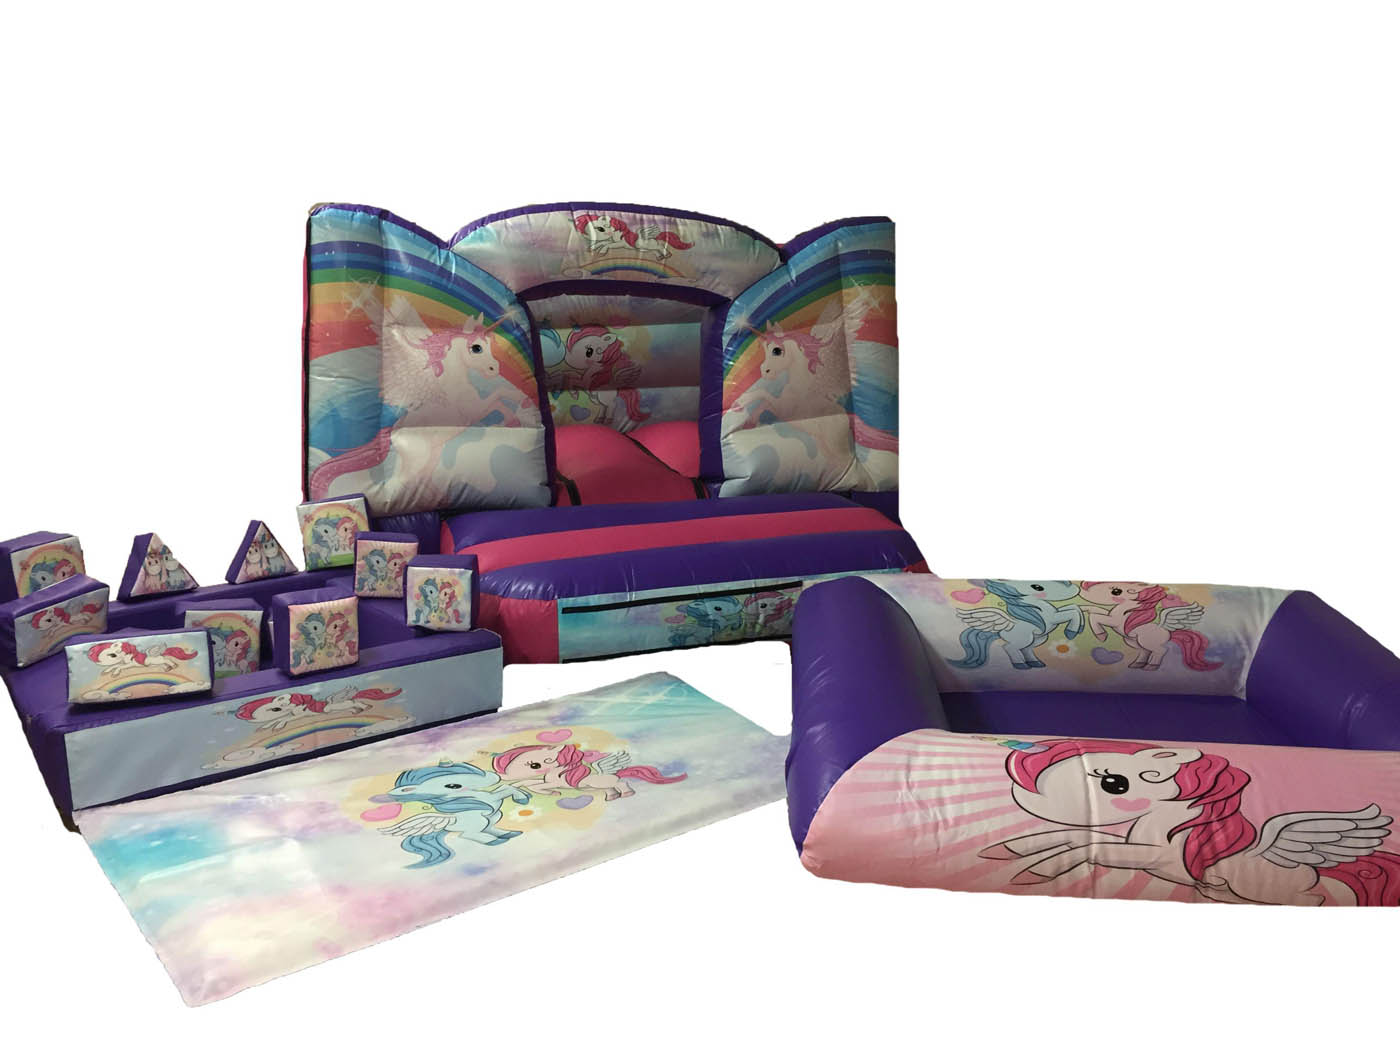 Inflatable Toddler Ball Pond Unicorn Themed with Soft Play Set